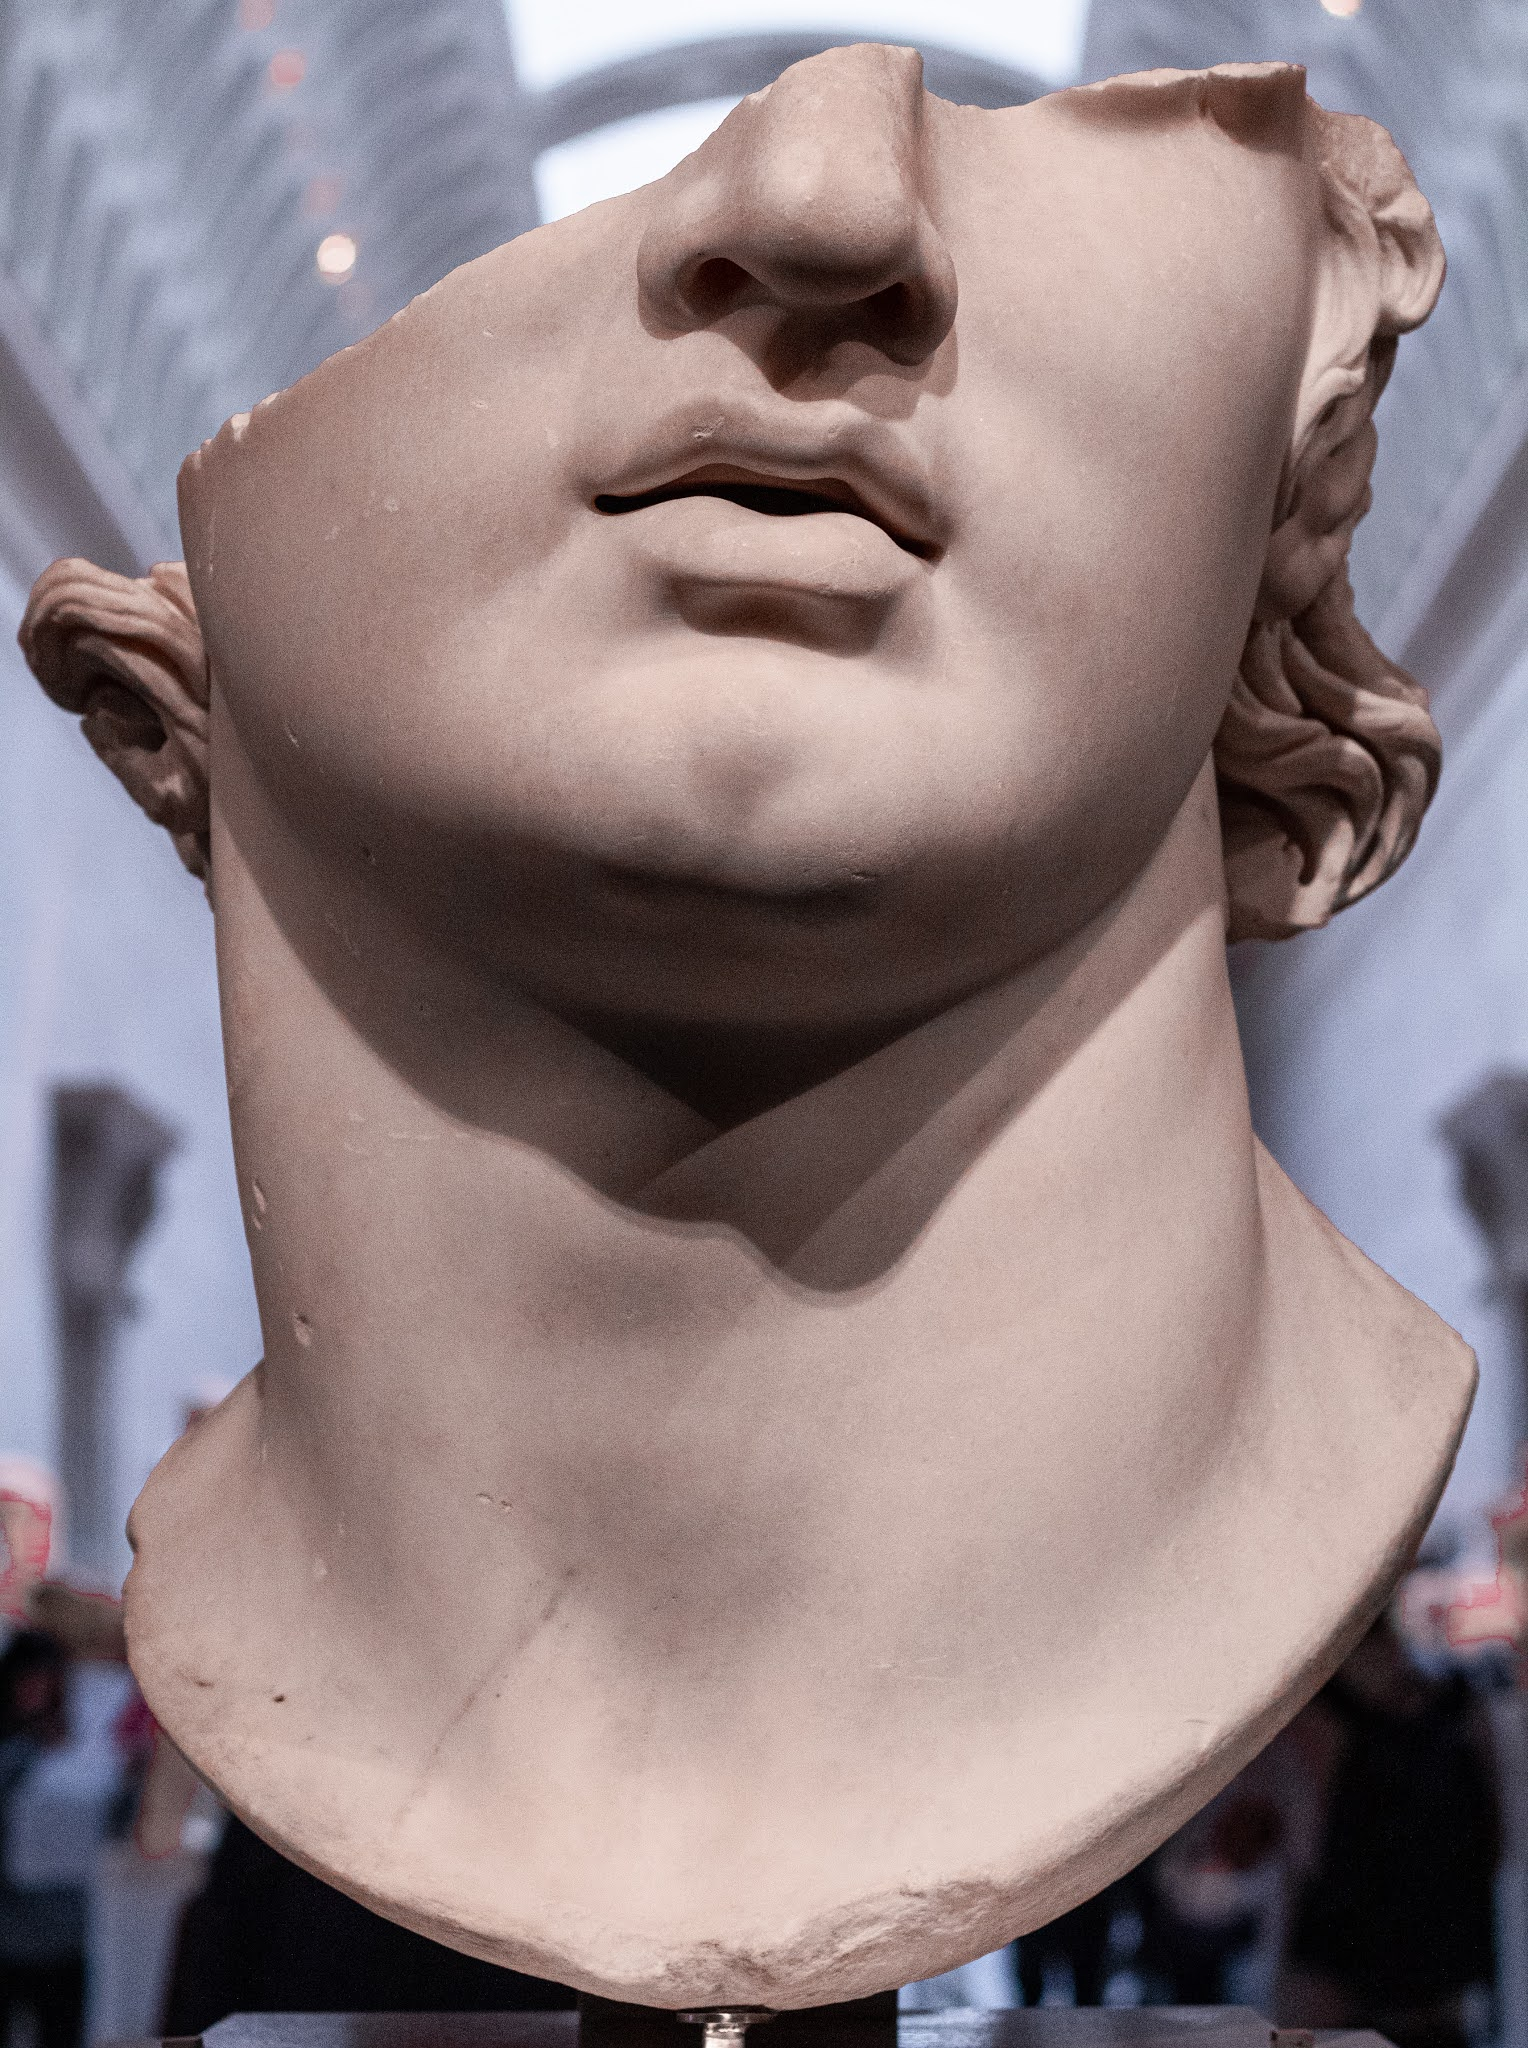 50+ Free Most Famous The Historical Sculptures HD Images You Want to See